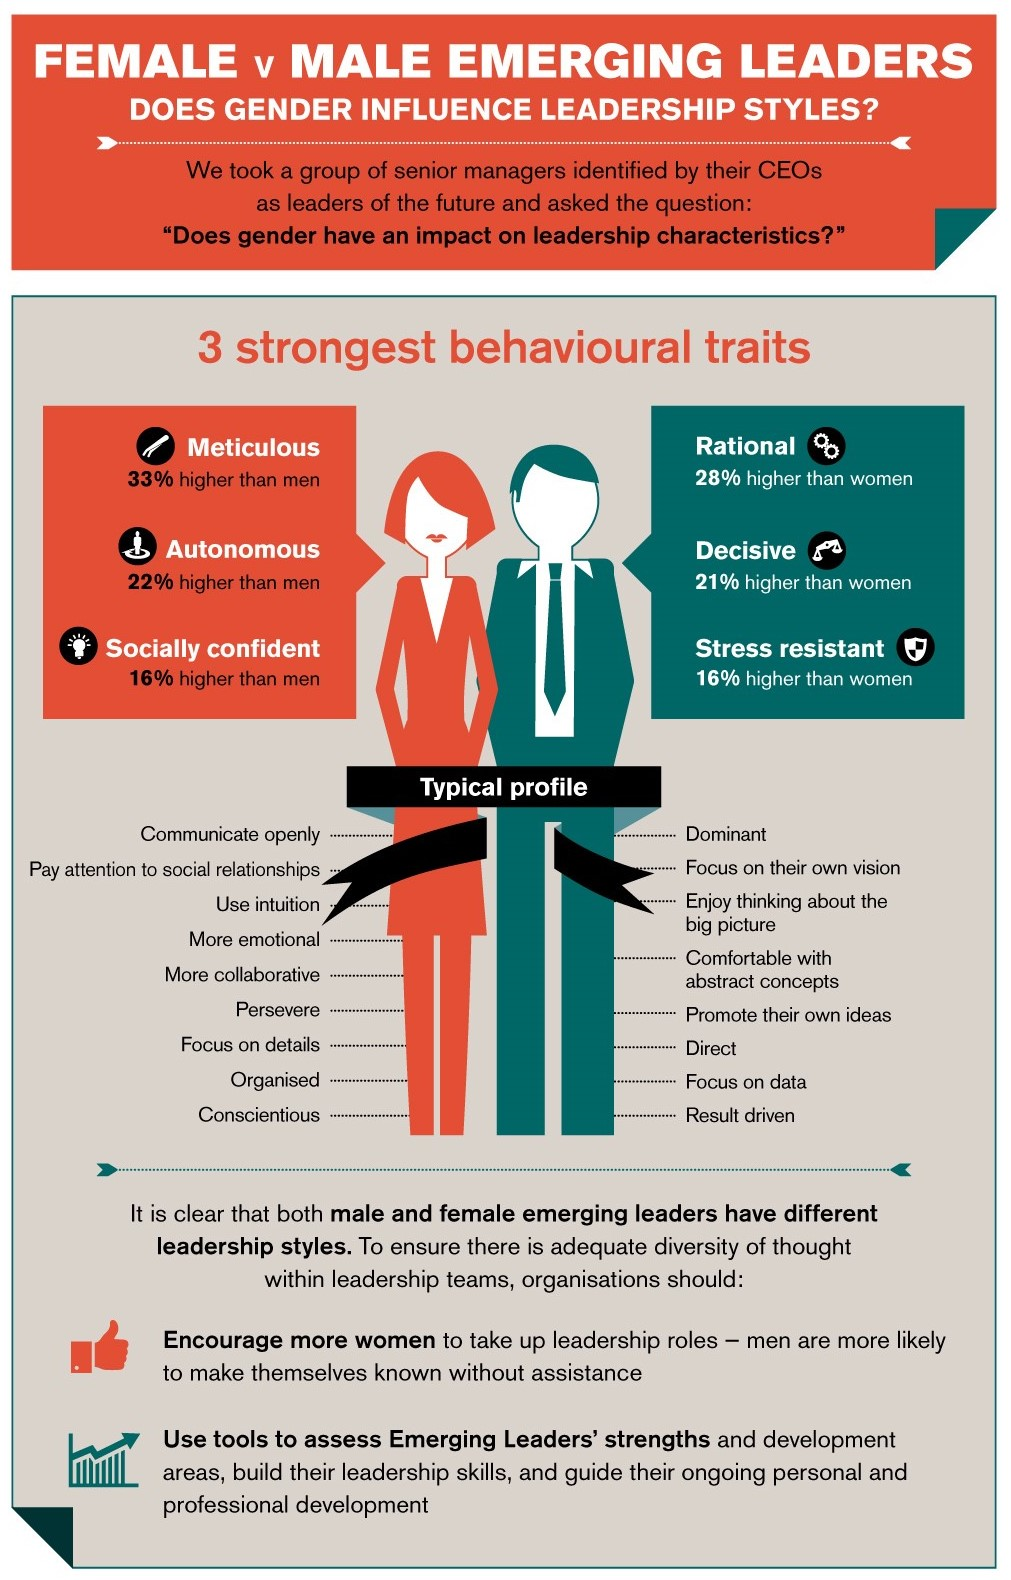 Does gender influence leadership styles? - Infographic